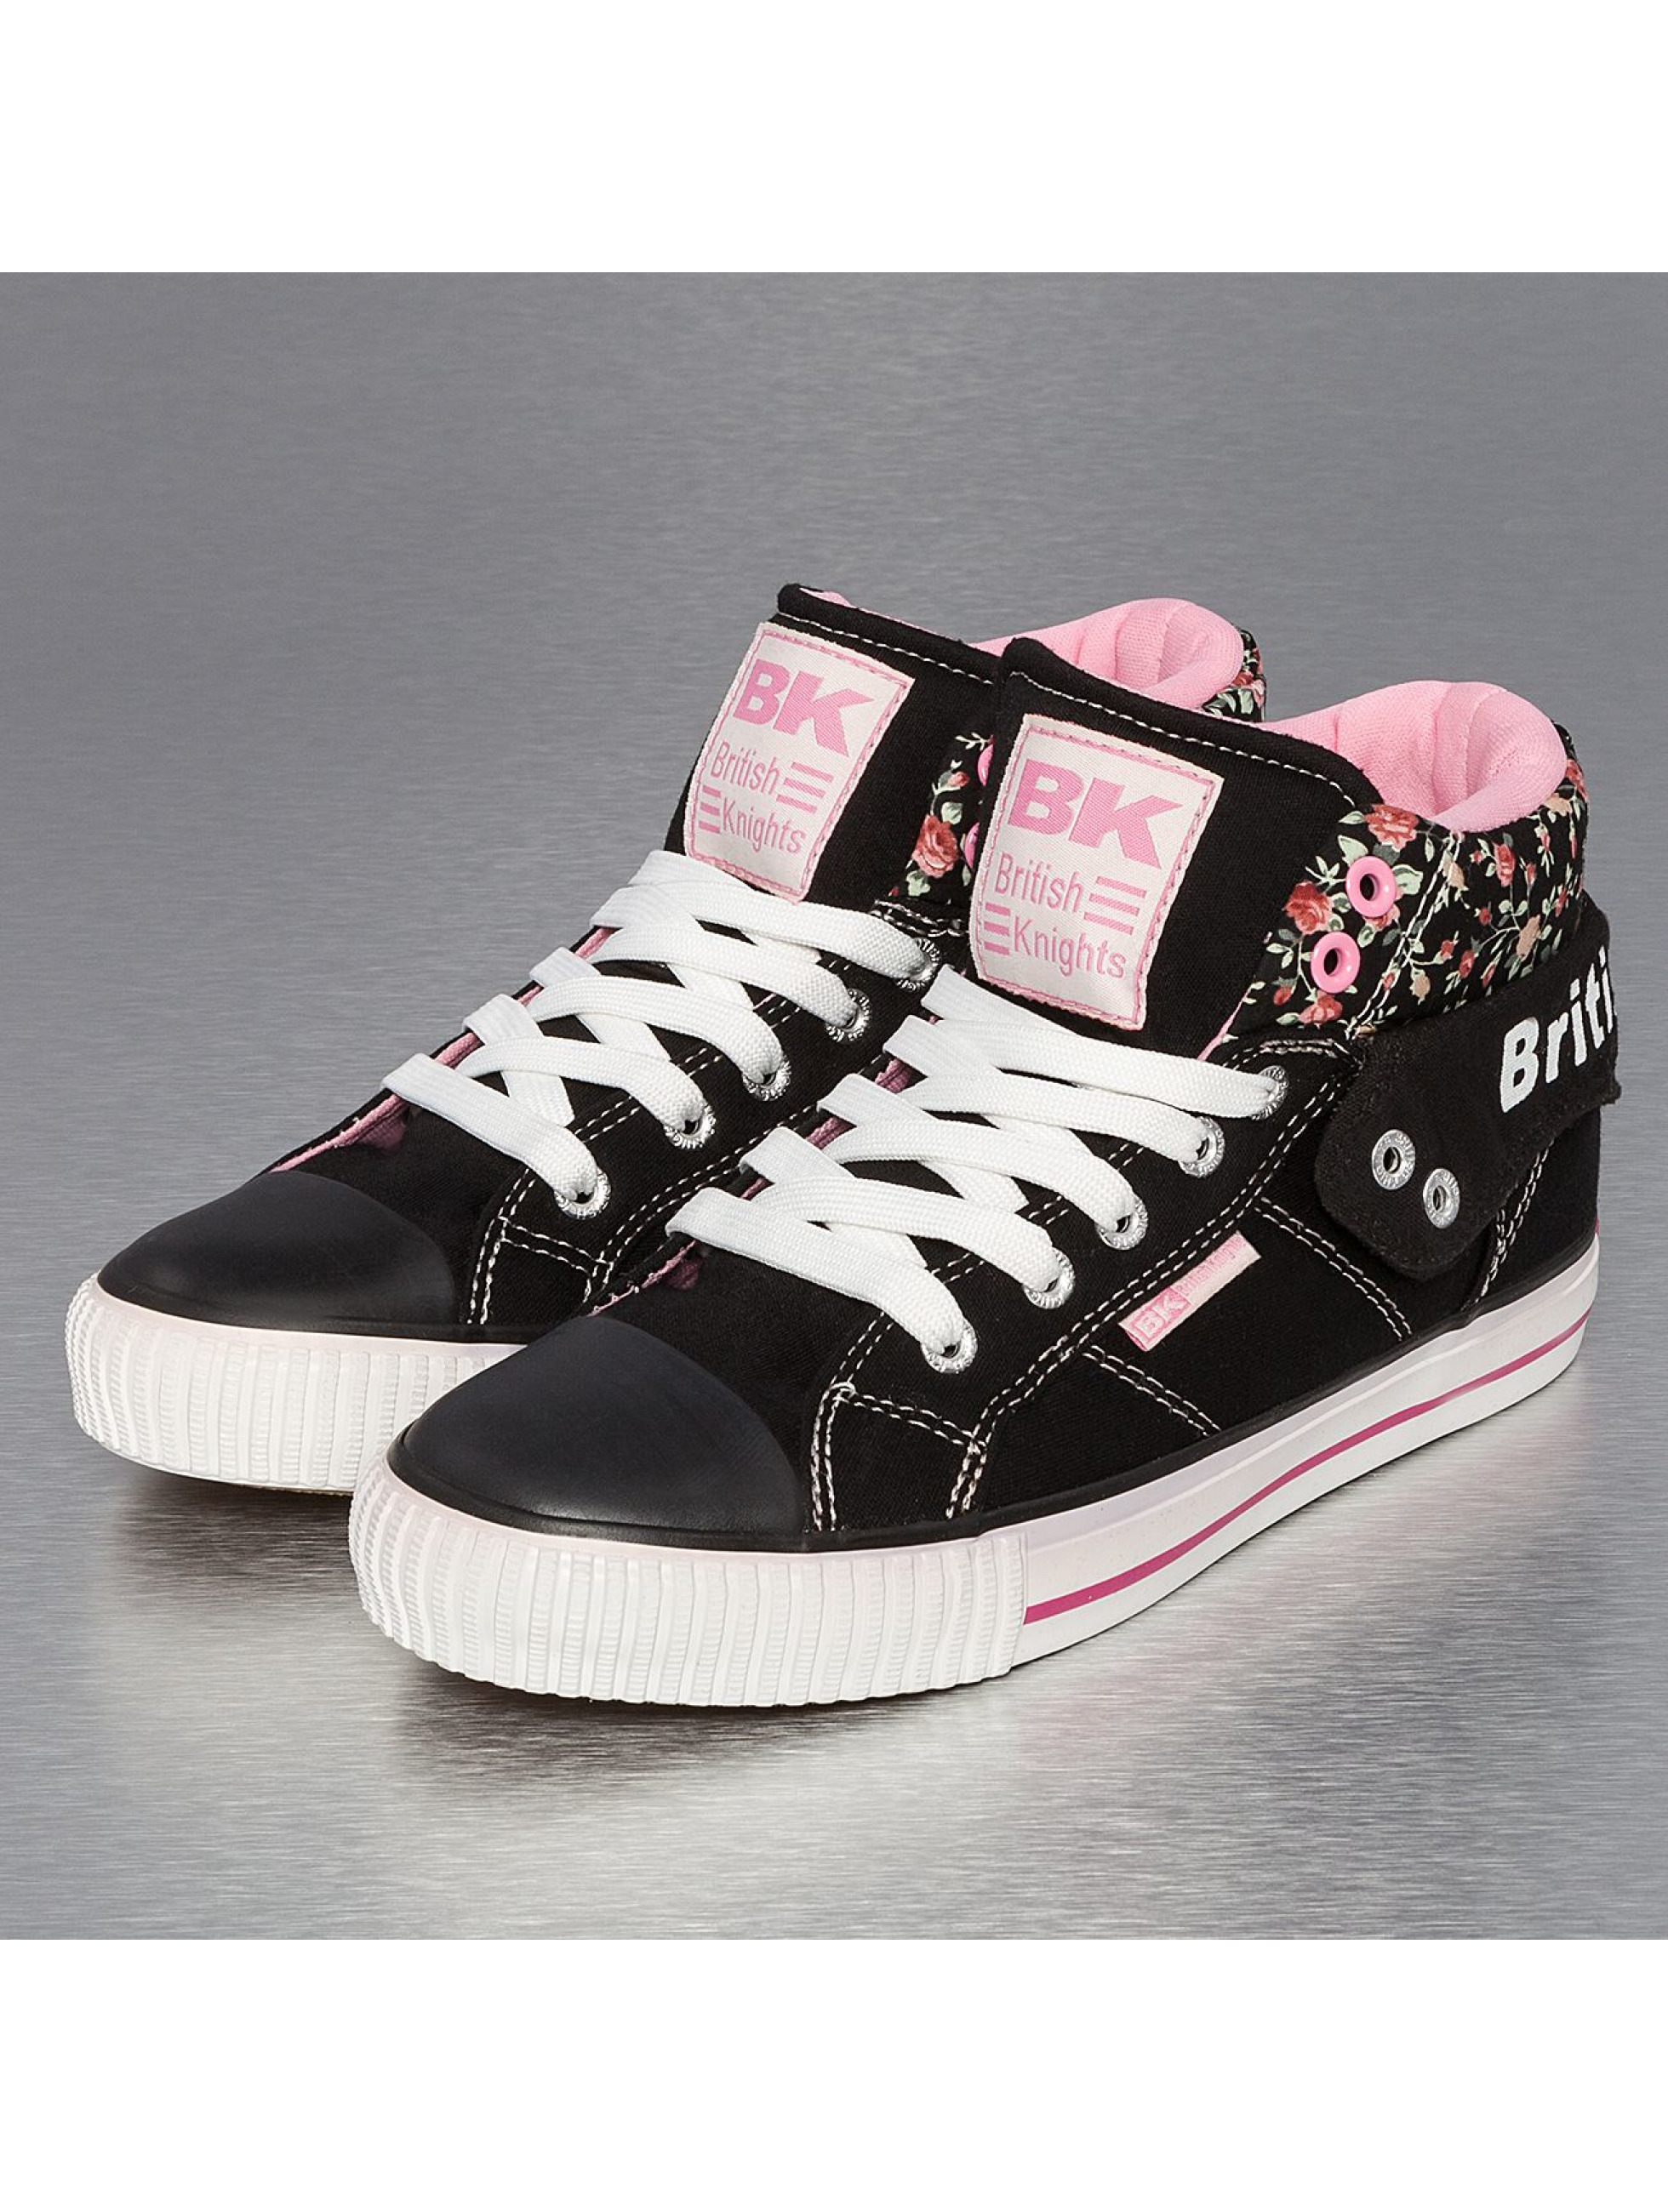 british knights sneakers mit tiefpreisgarantie online kaufen. Black Bedroom Furniture Sets. Home Design Ideas